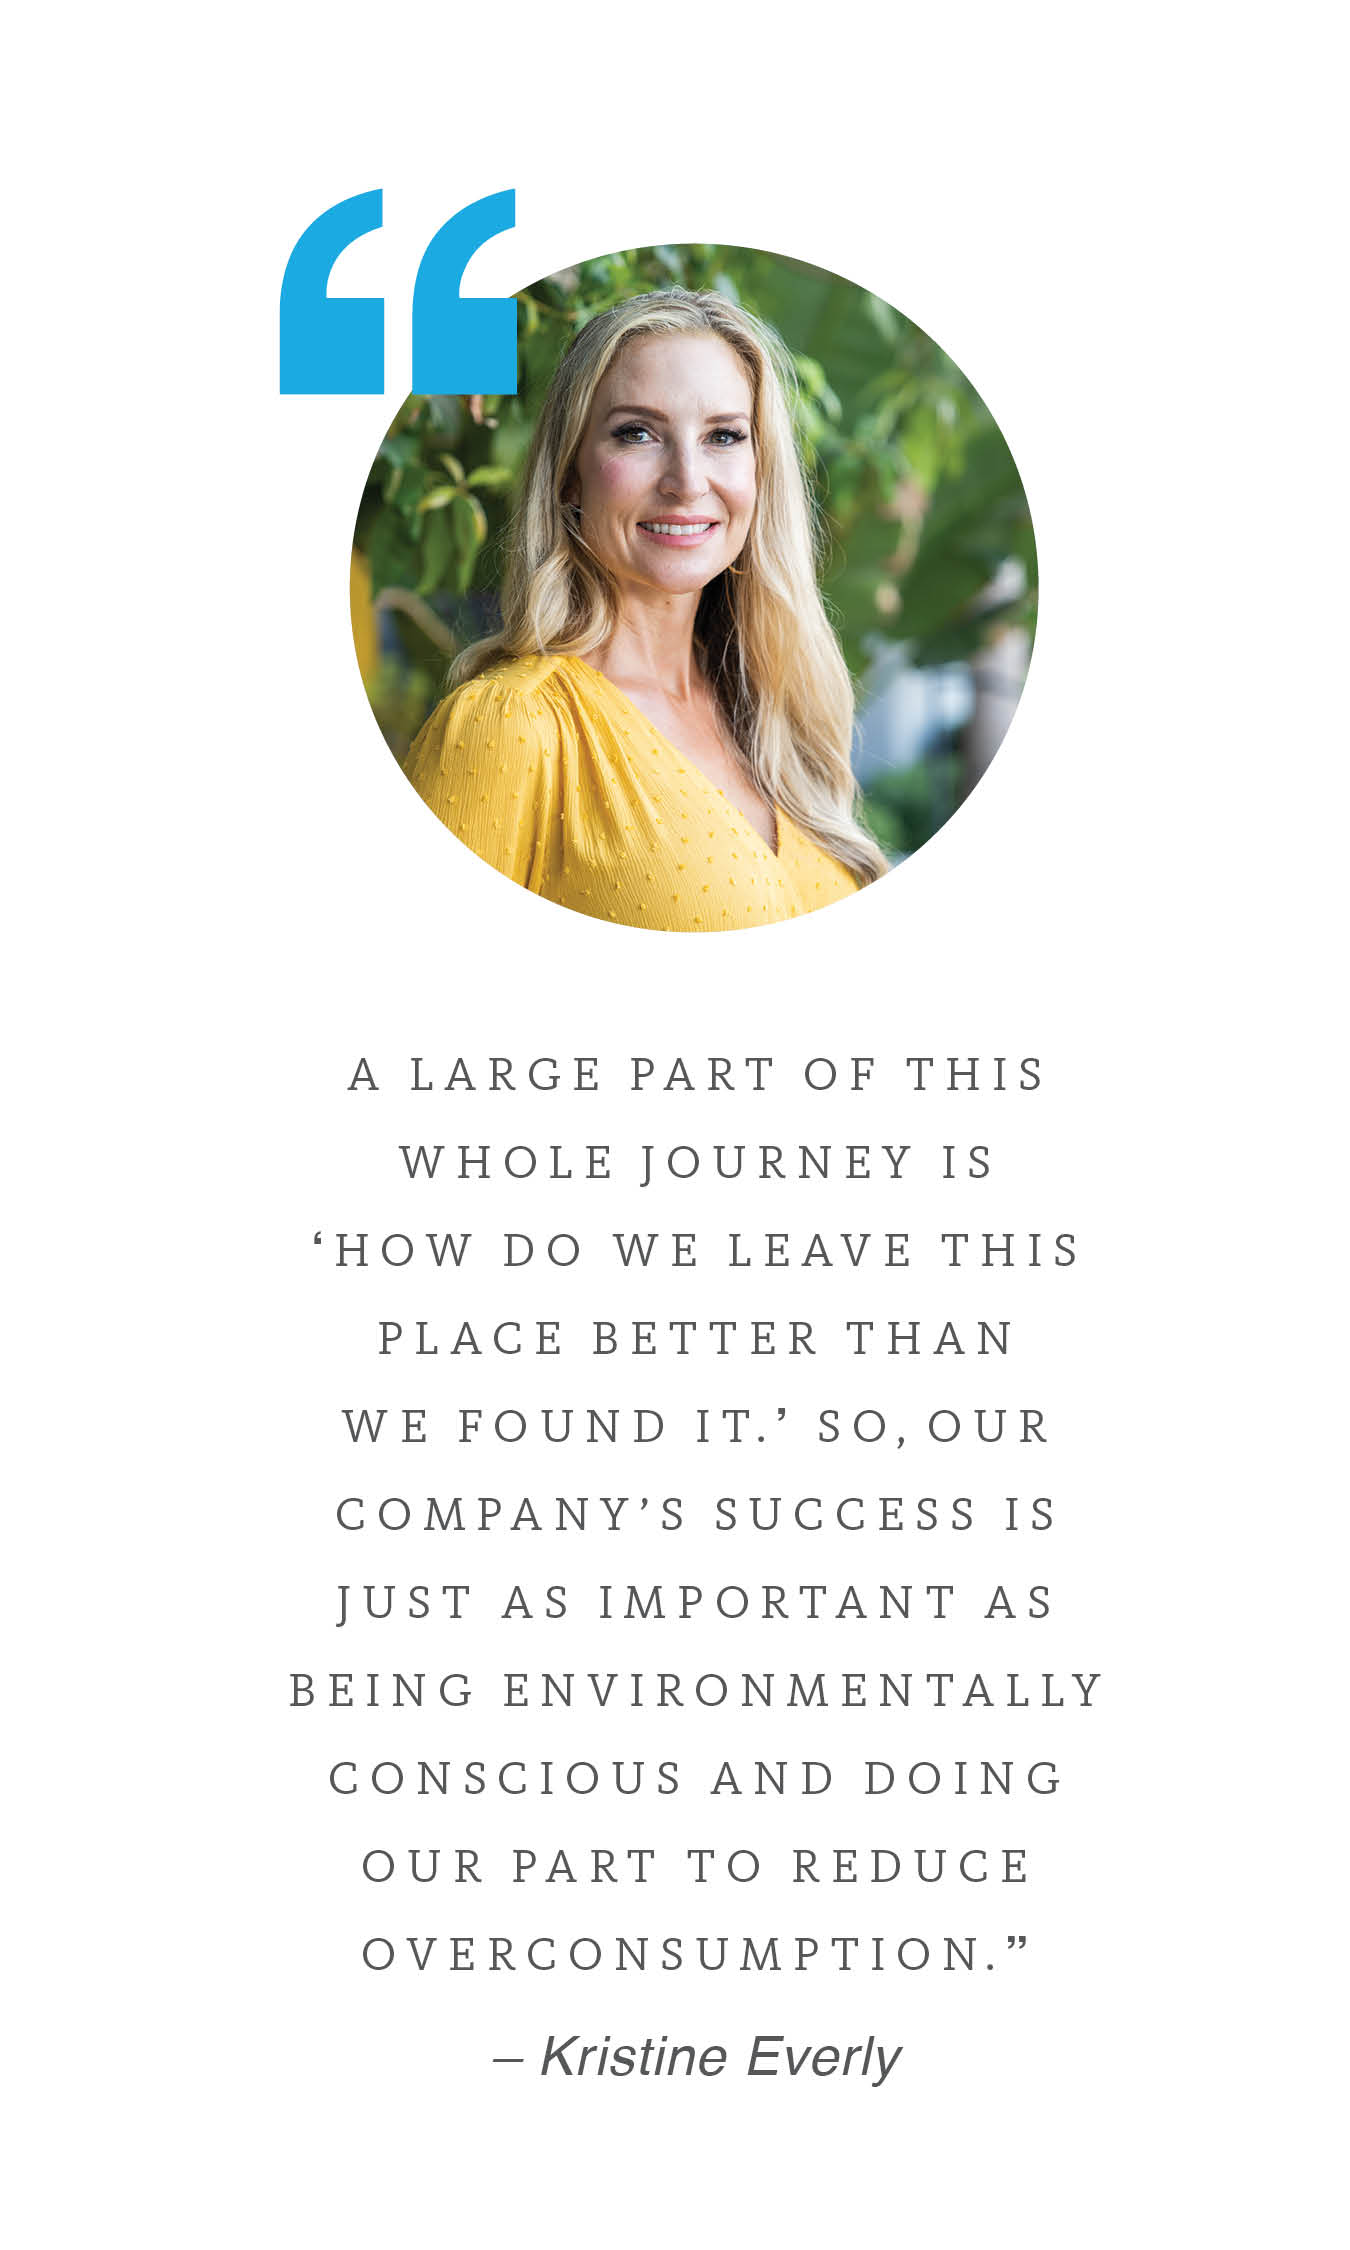 """A large part of this whole journey is 'how do we leave this place better than we found it.' So, our company's success is just as important as being environmentally conscious and doing our part to reduce overconsumption."" – Kristine Everly, co-founder of Brevvie"